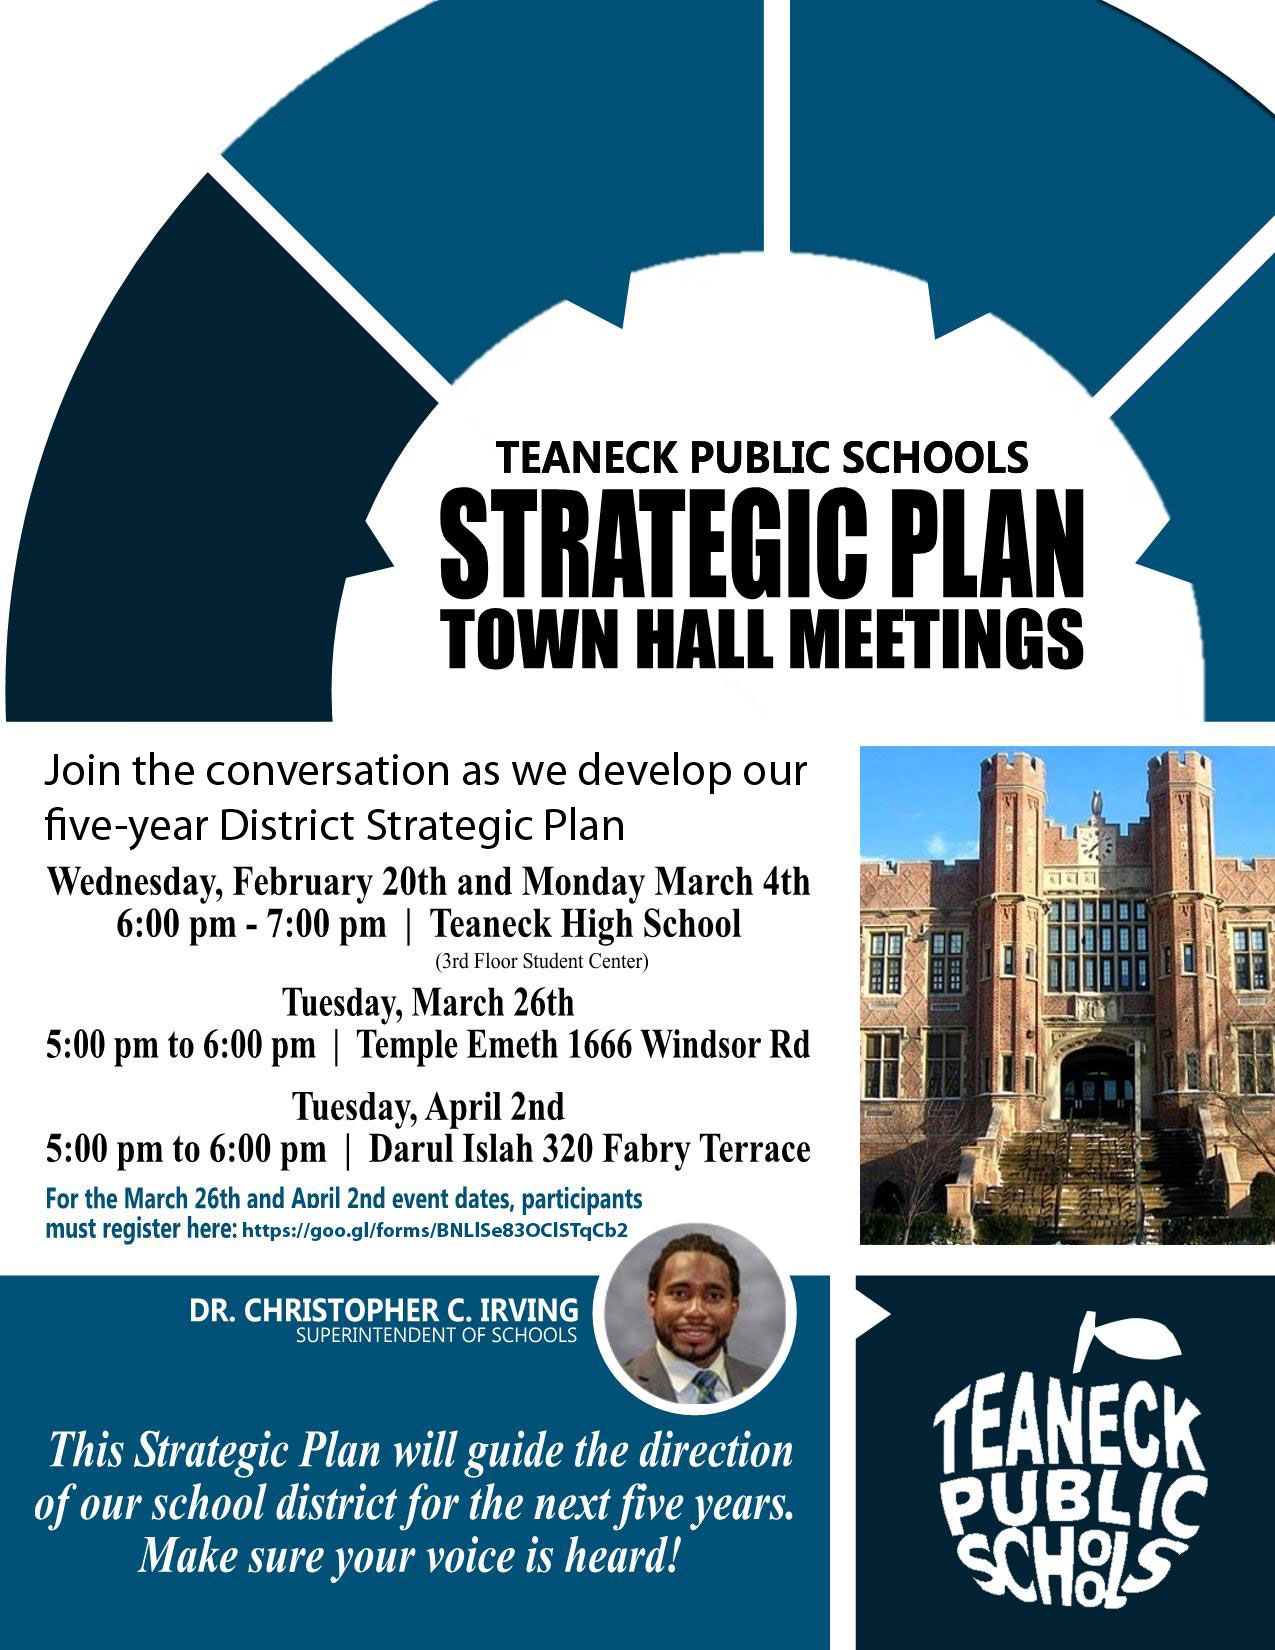 Strategic Plan Town Hall Meetings